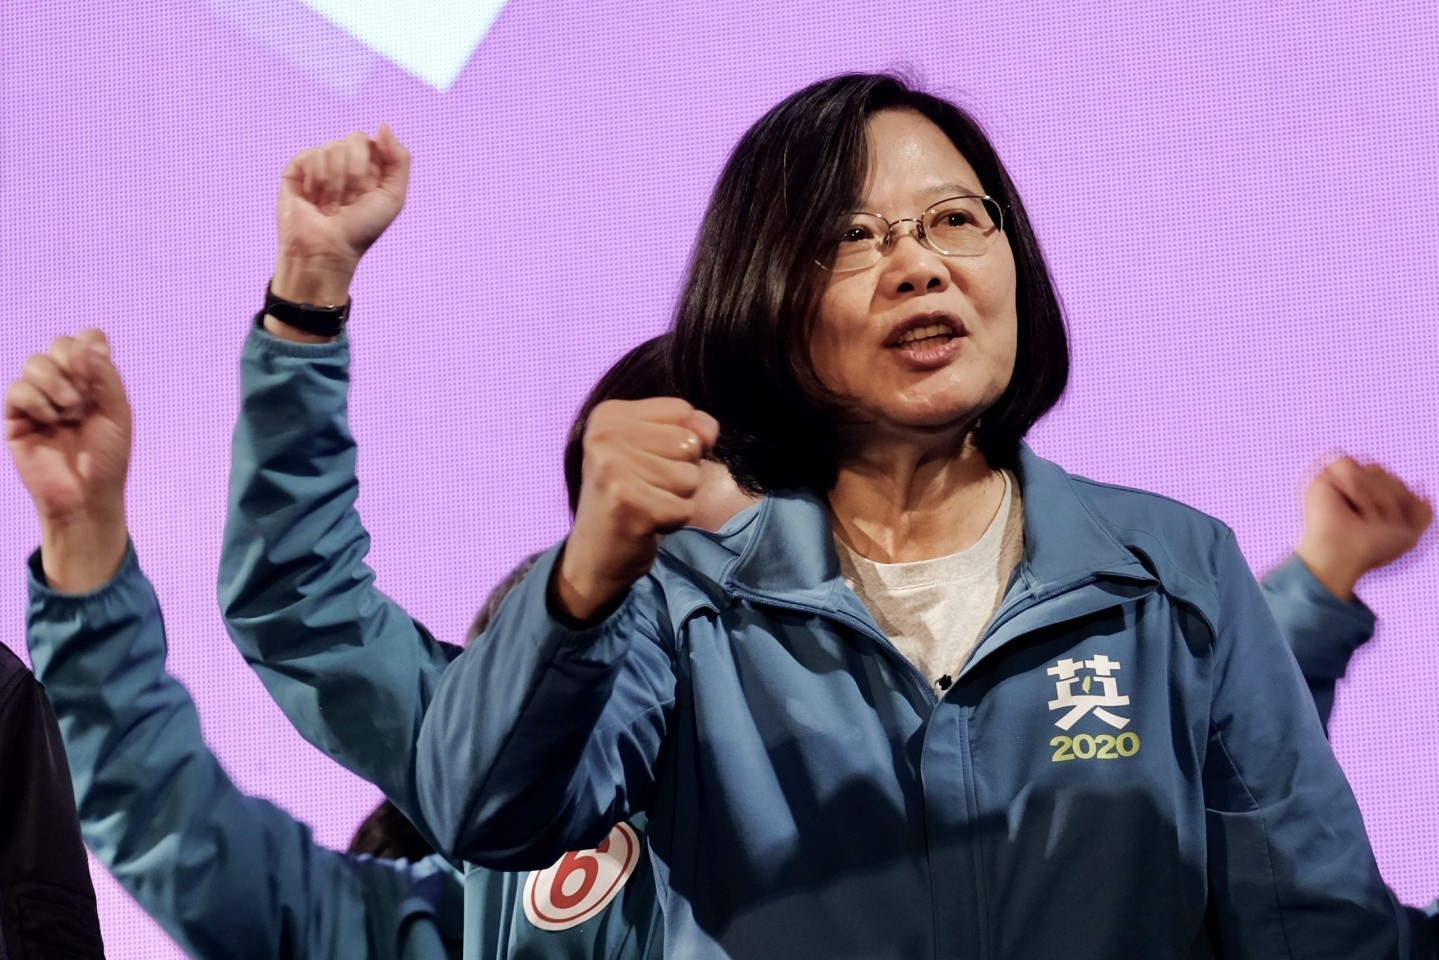 This photo taken on January 5, 2020 shows Tsai Ing-wen gesturing during a campaign rally at the Xinzhuang Stadium in New Taipei City. (Sam Yeh/AFP)